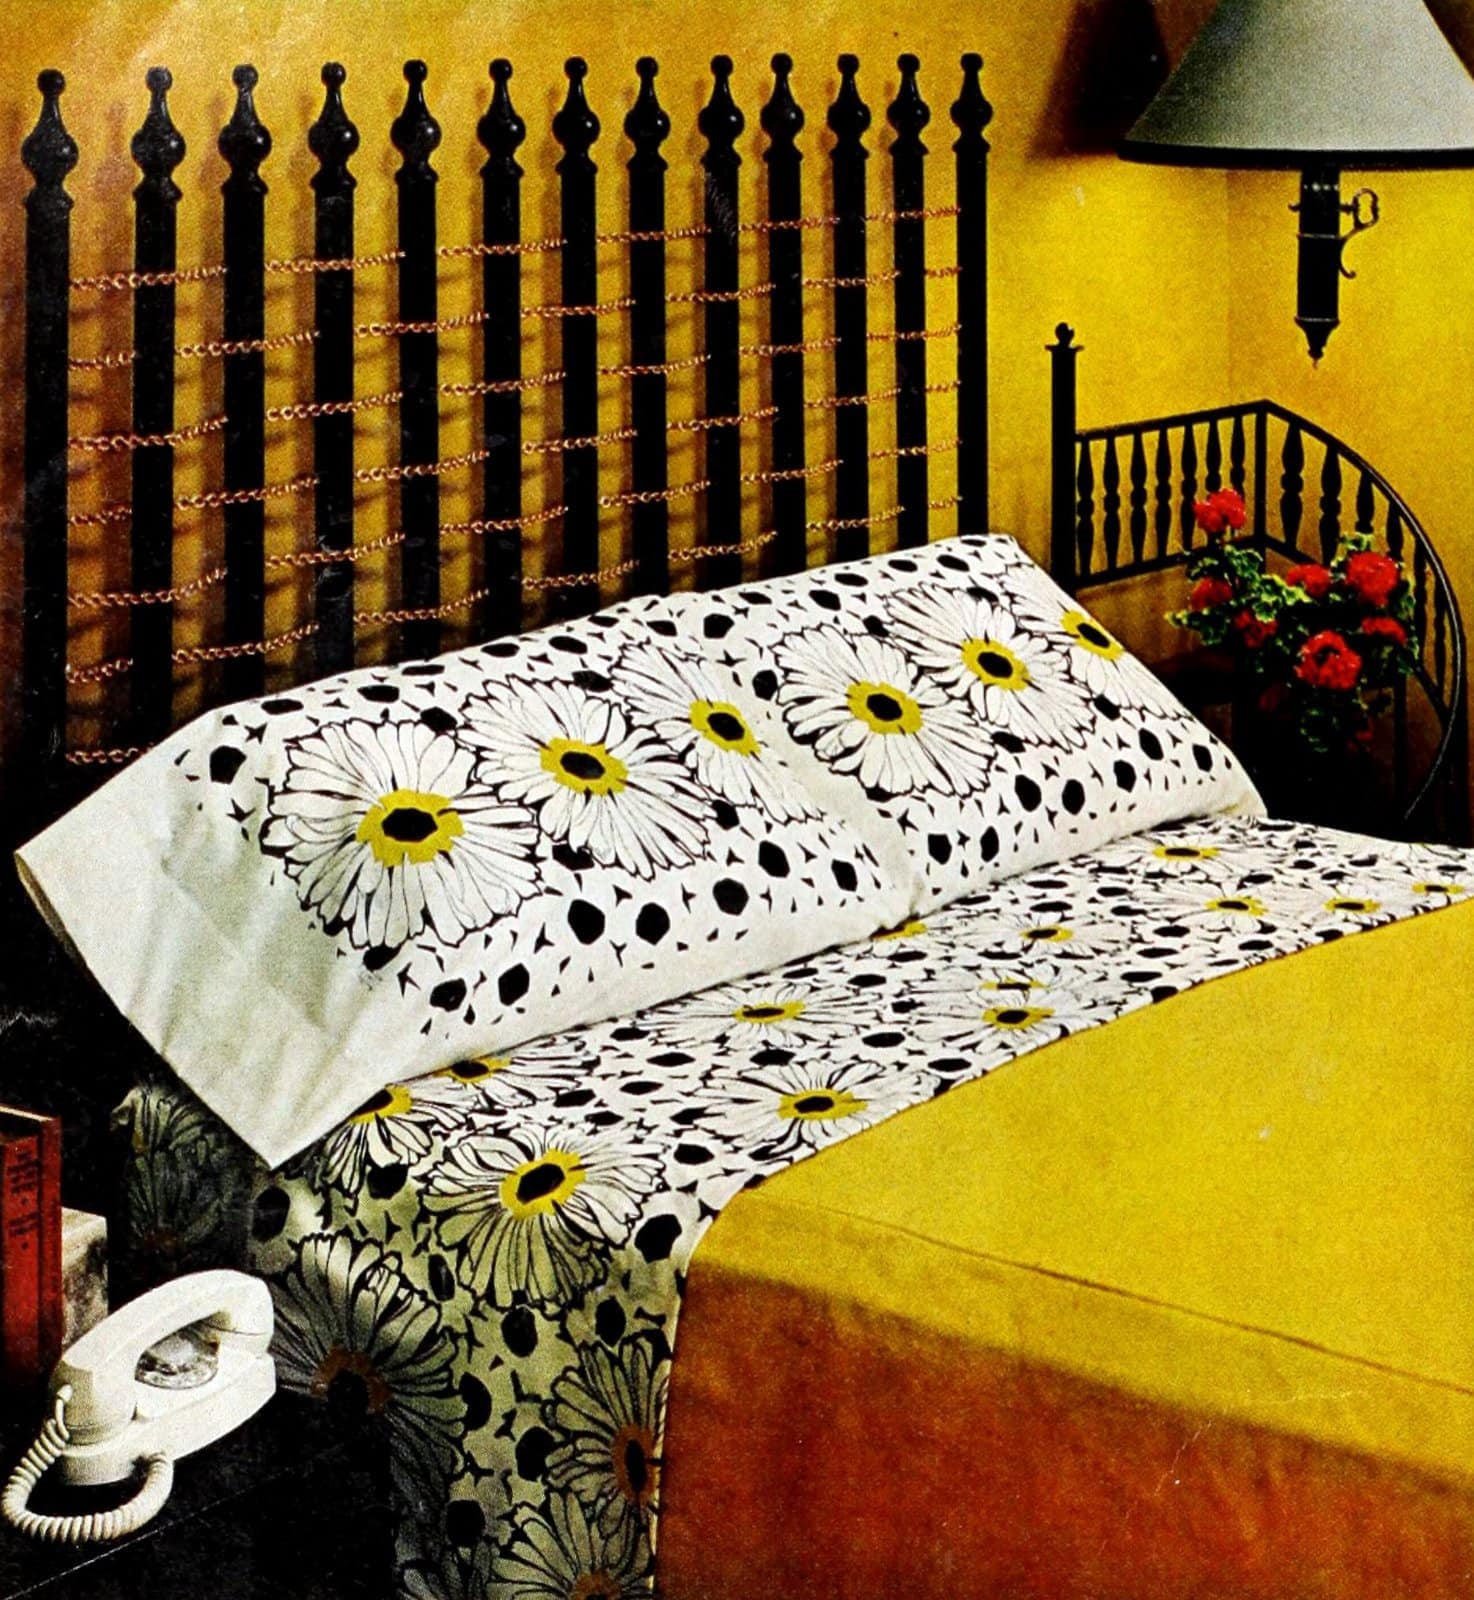 A DIY drapery rod headboard (1969)